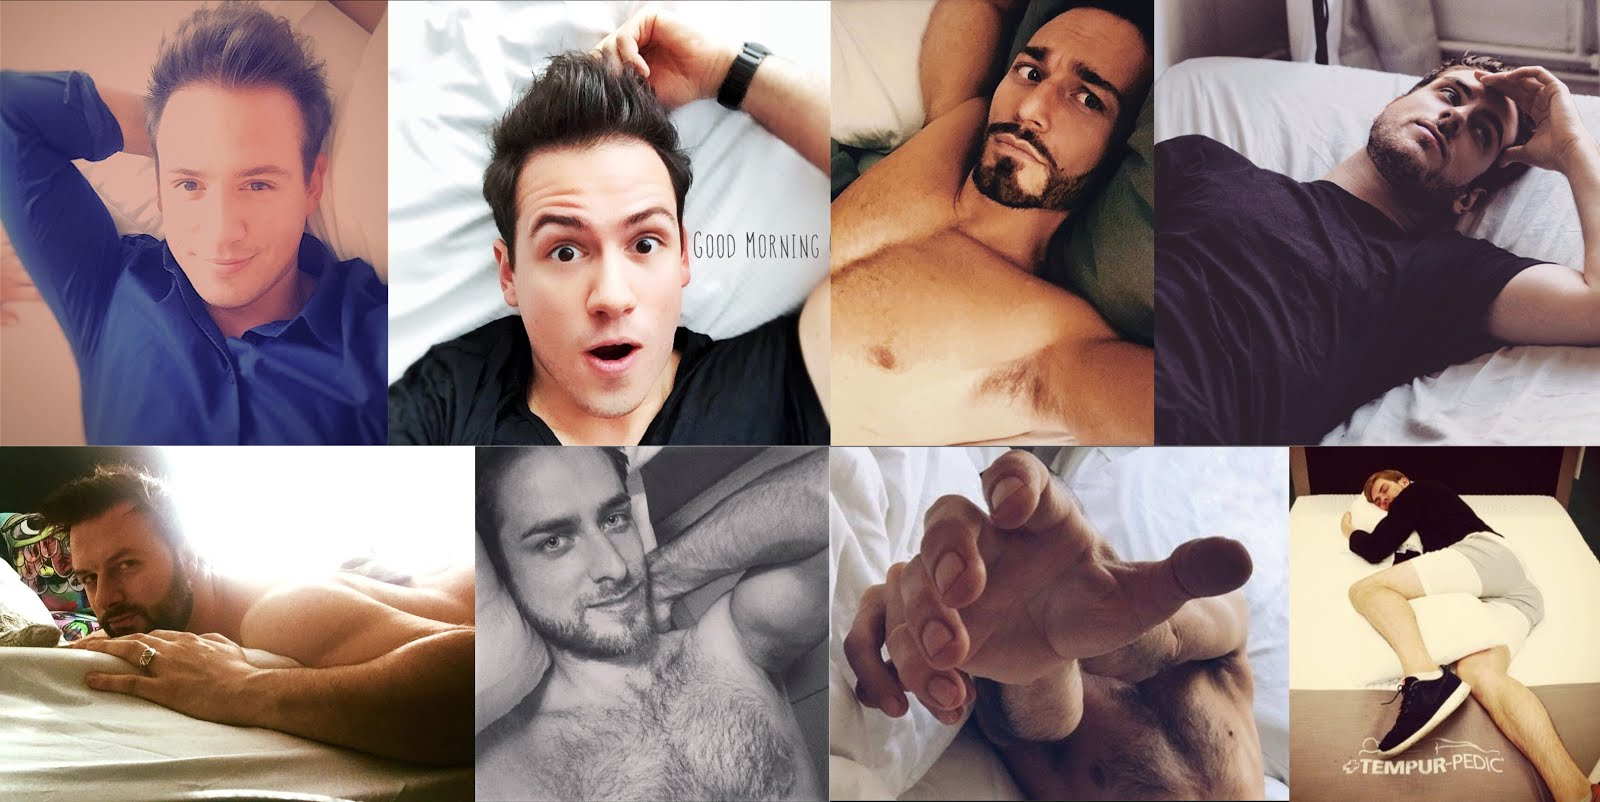 The 2017 Calendar will be BARIHUNKS IN BED. Big cash prizes for best photos!